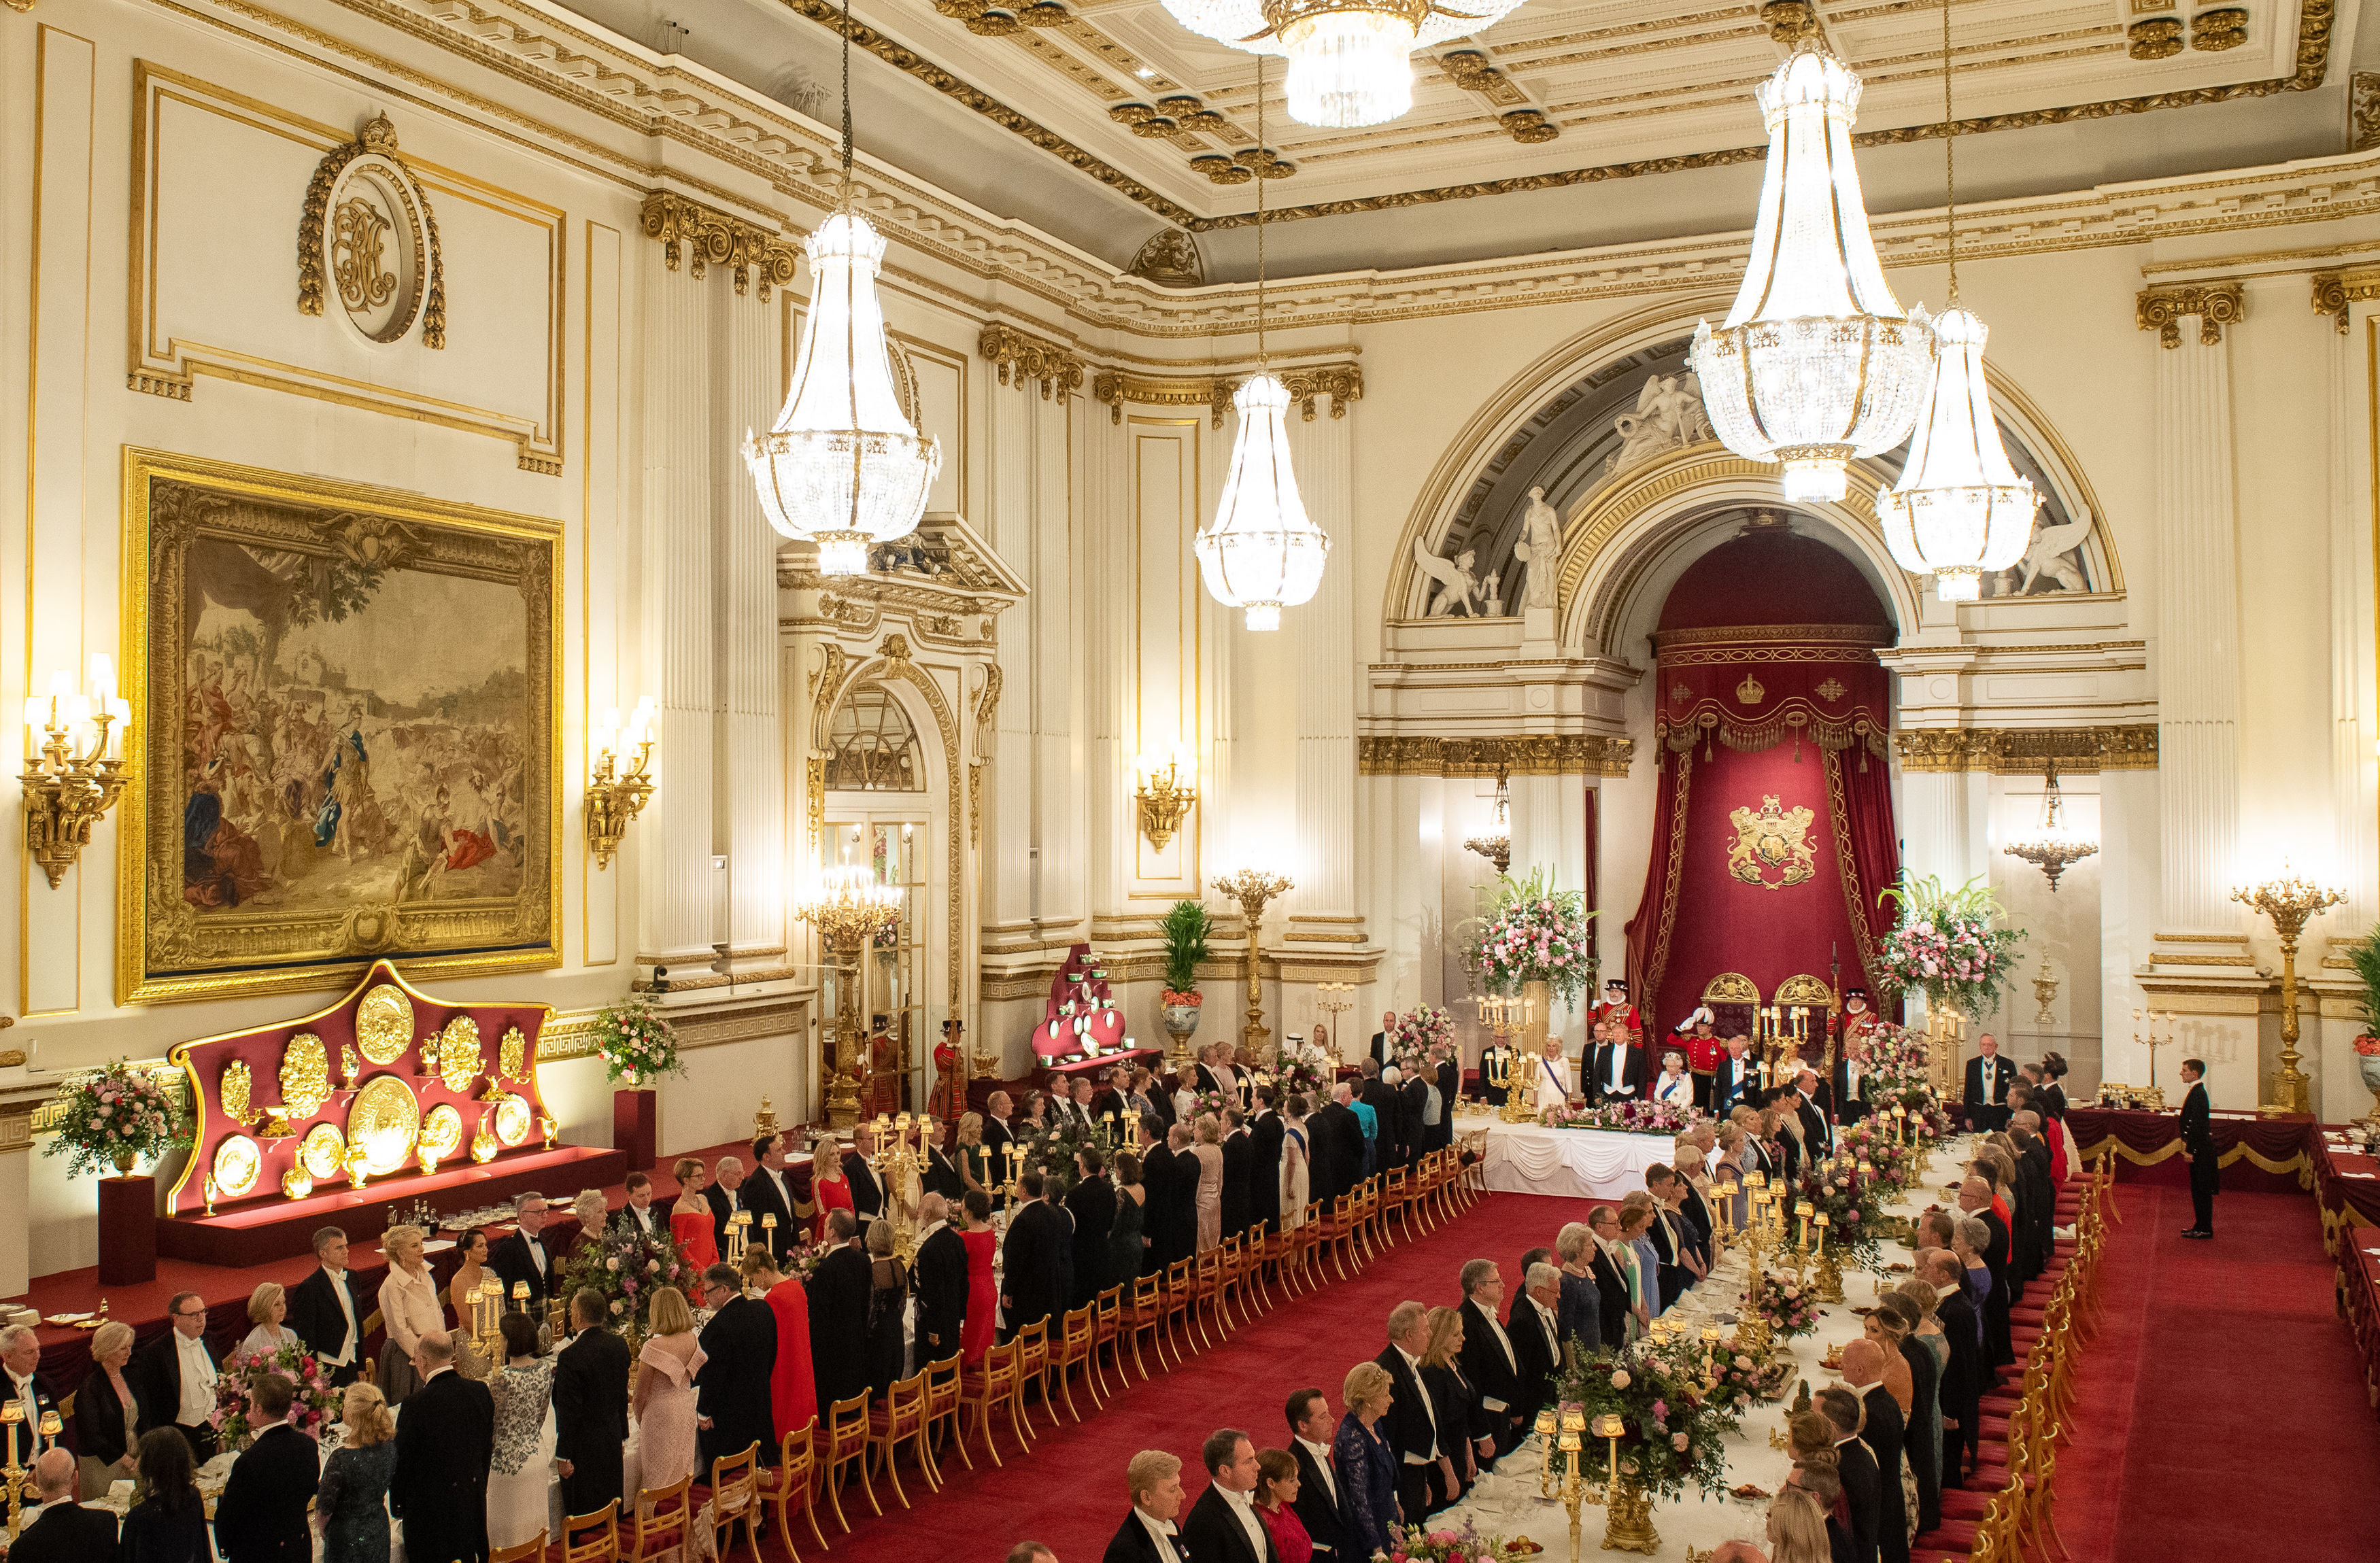 Guests during the lavish state banquet at Buckingham Palace